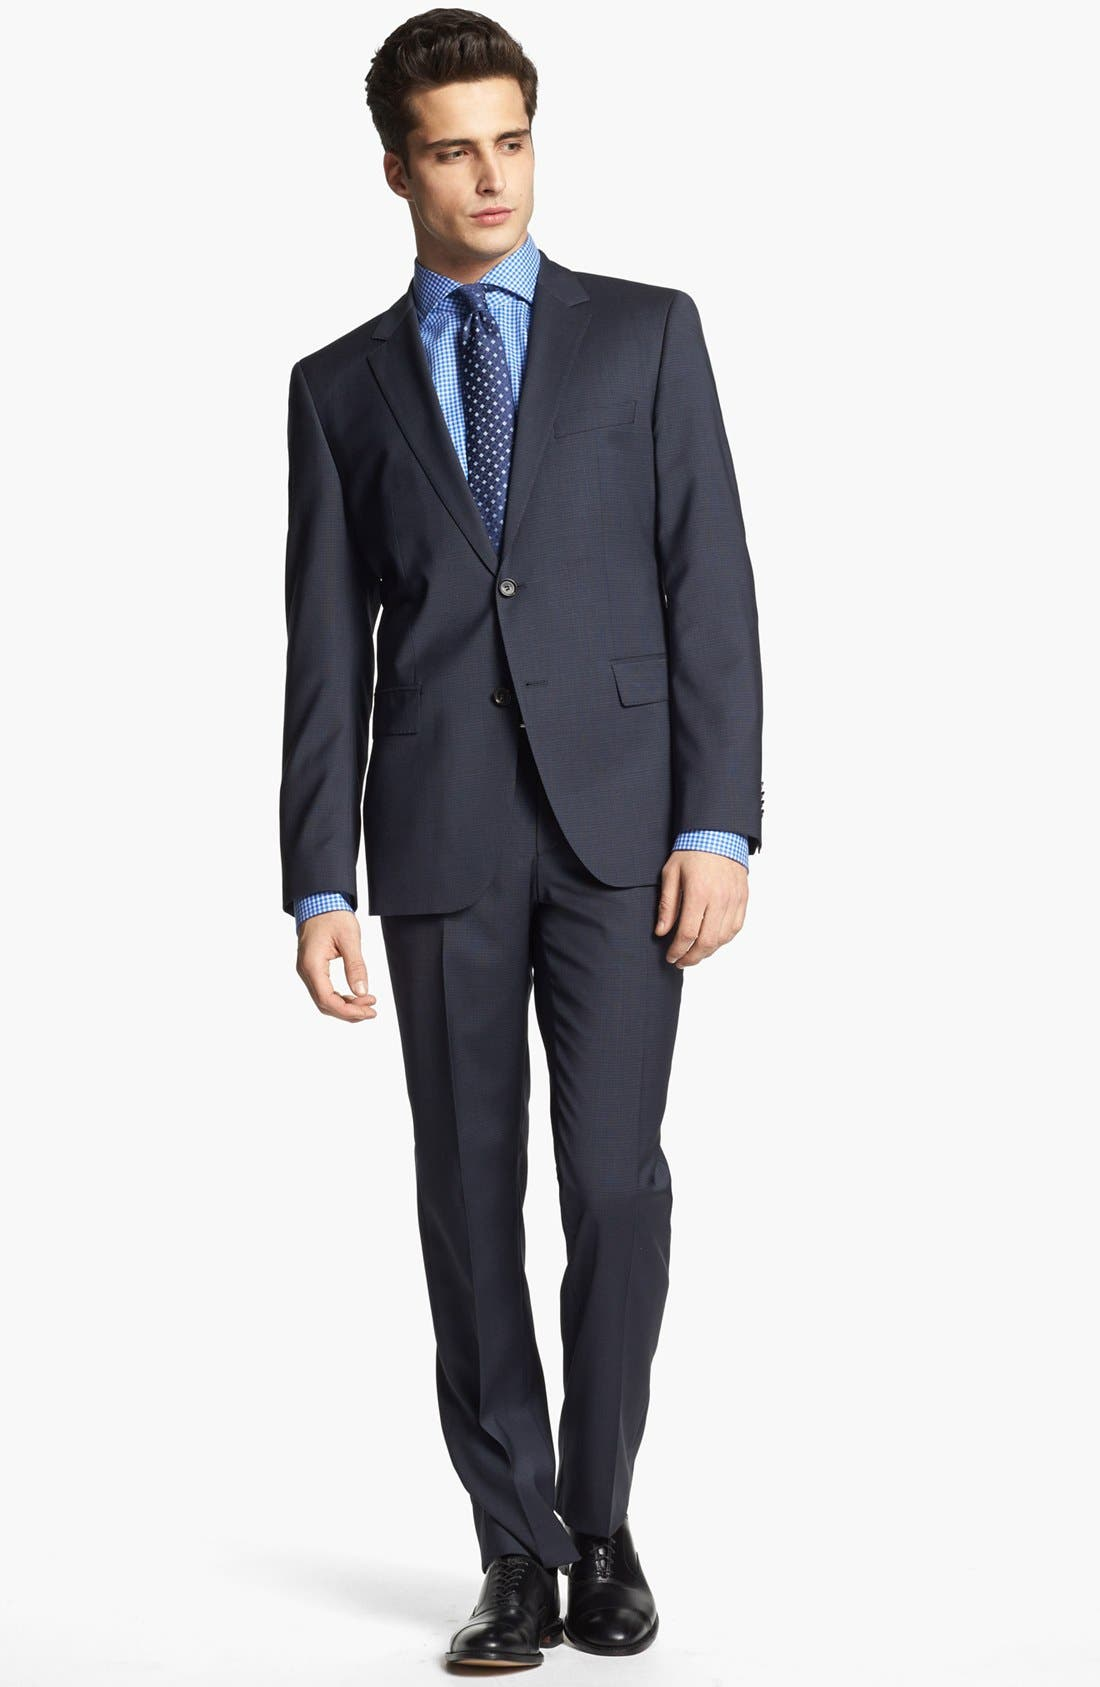 Alternate Image 1 Selected - BOSS HUGO BOSS 'James/Sharp' Trim Fit Check Suit